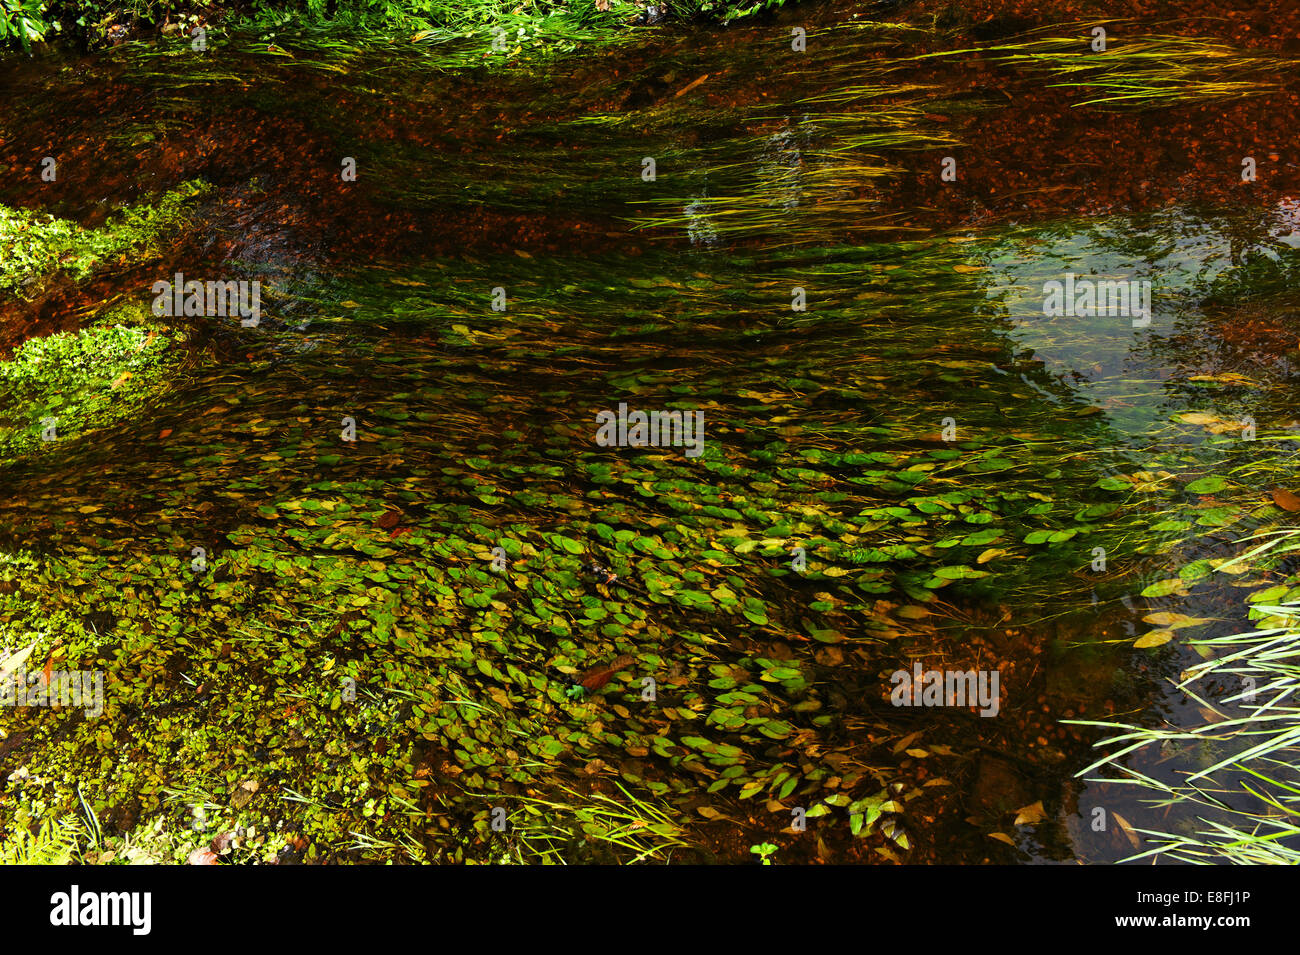 UK, England, Hampshire, New Forest National Park, Strom, fließendes Wasser und Rasen Stockbild